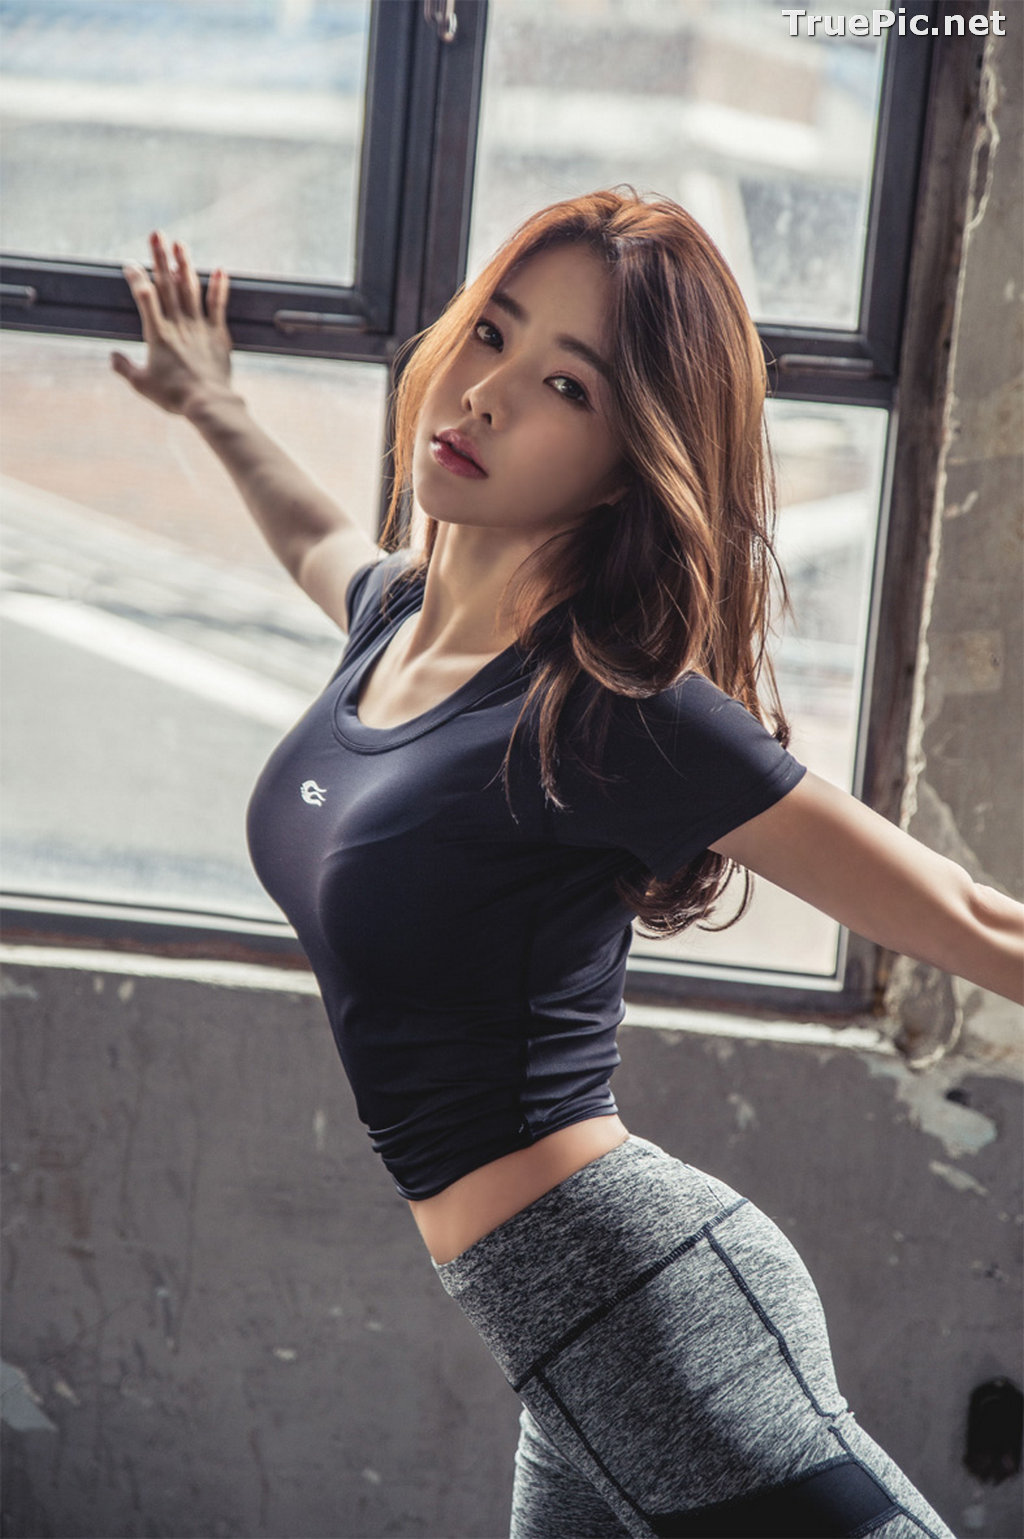 Image Korean Beautiful Model – An Seo Rin – Fitness Fashion Photography #2 - TruePic.net - Picture-8